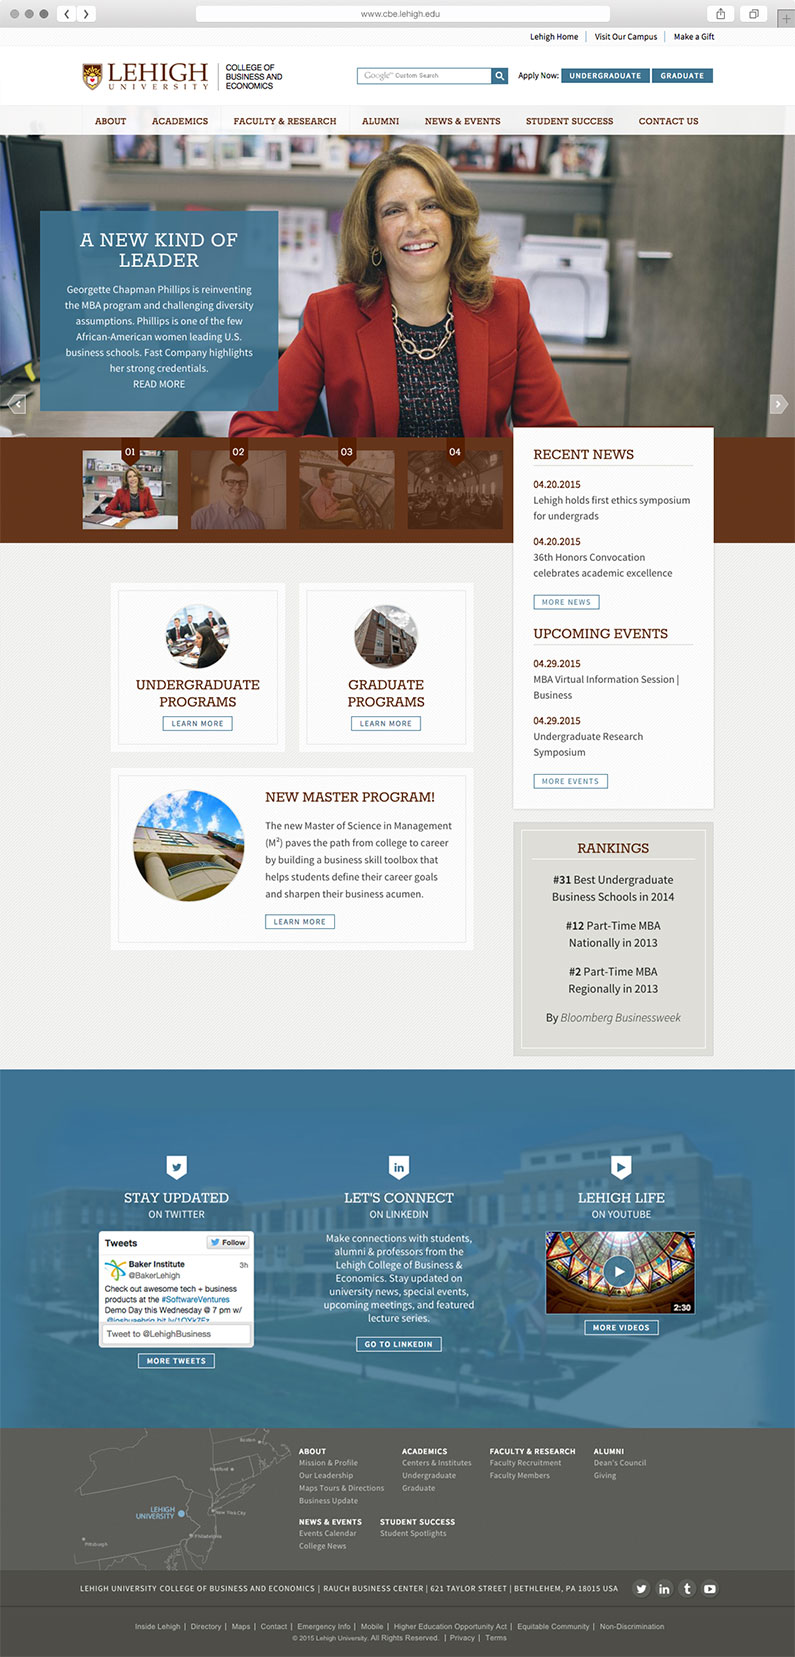 Website User Interface Design for Lehigh University College of Business and Economics, Lehigh University, Lehigh University Logo, Lehigh University Logo Design, Push10, Philadelphia, University web design, higher ed web development, web design for college